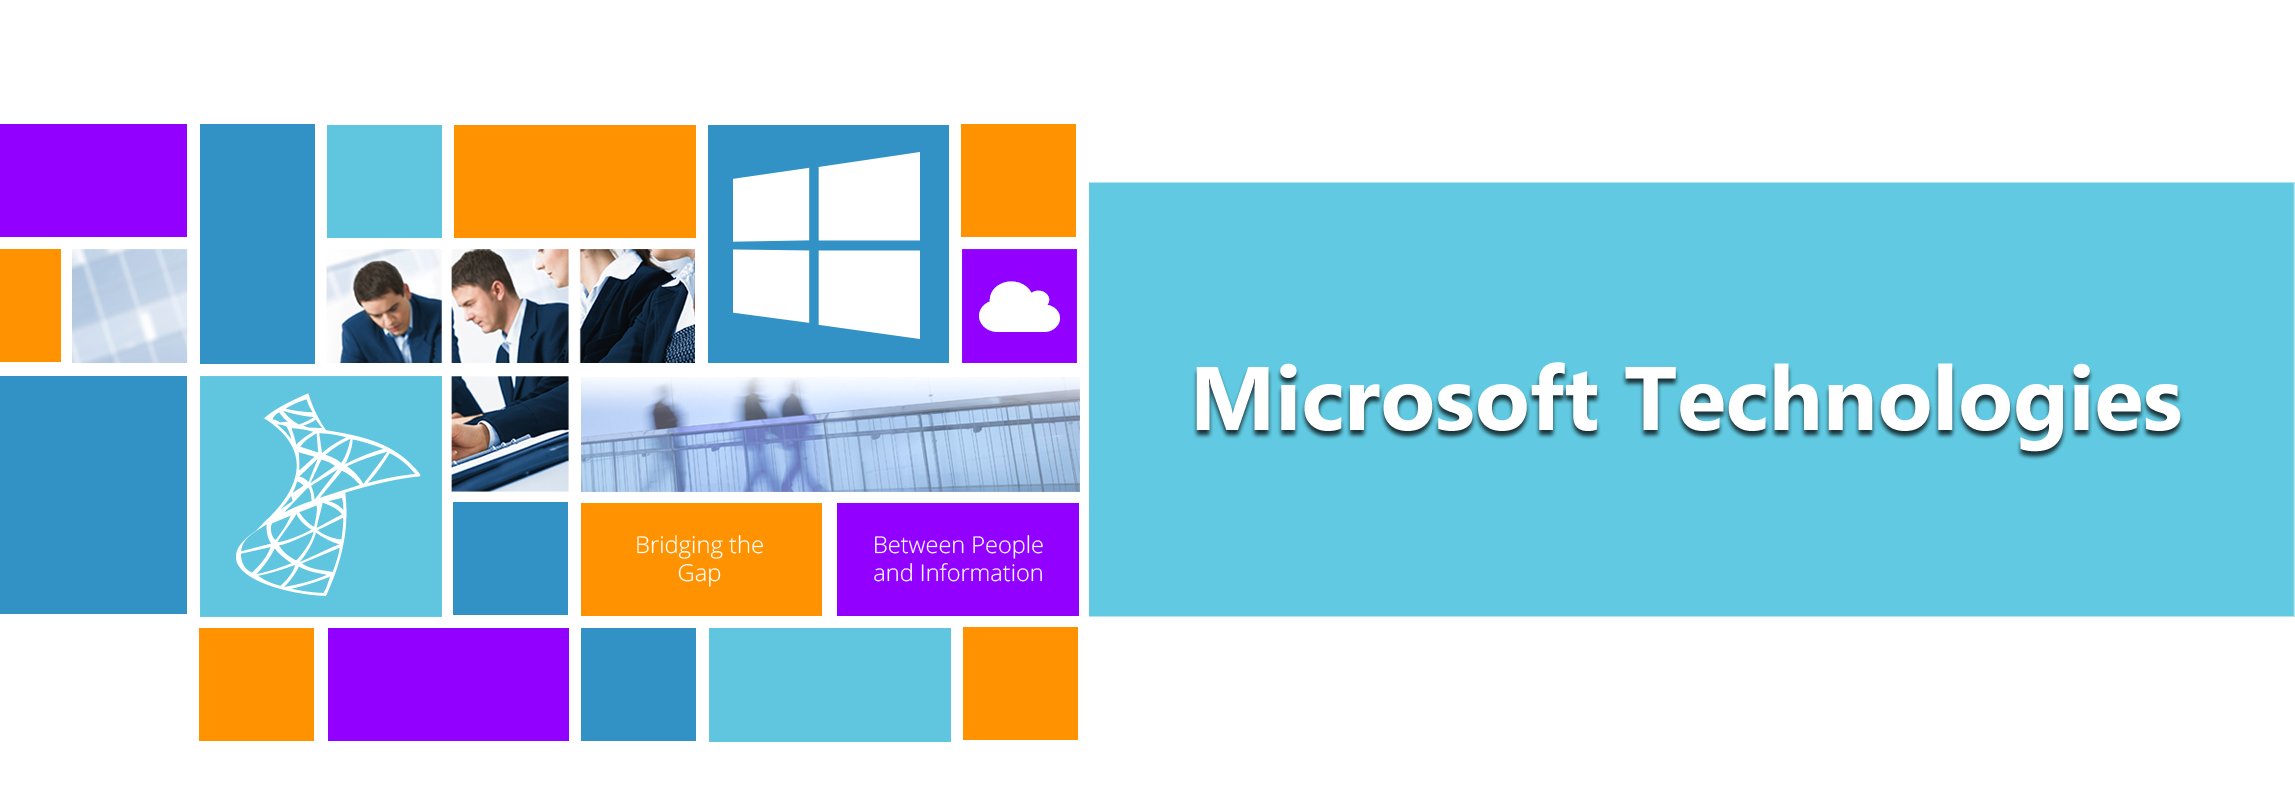 microsoft banner images